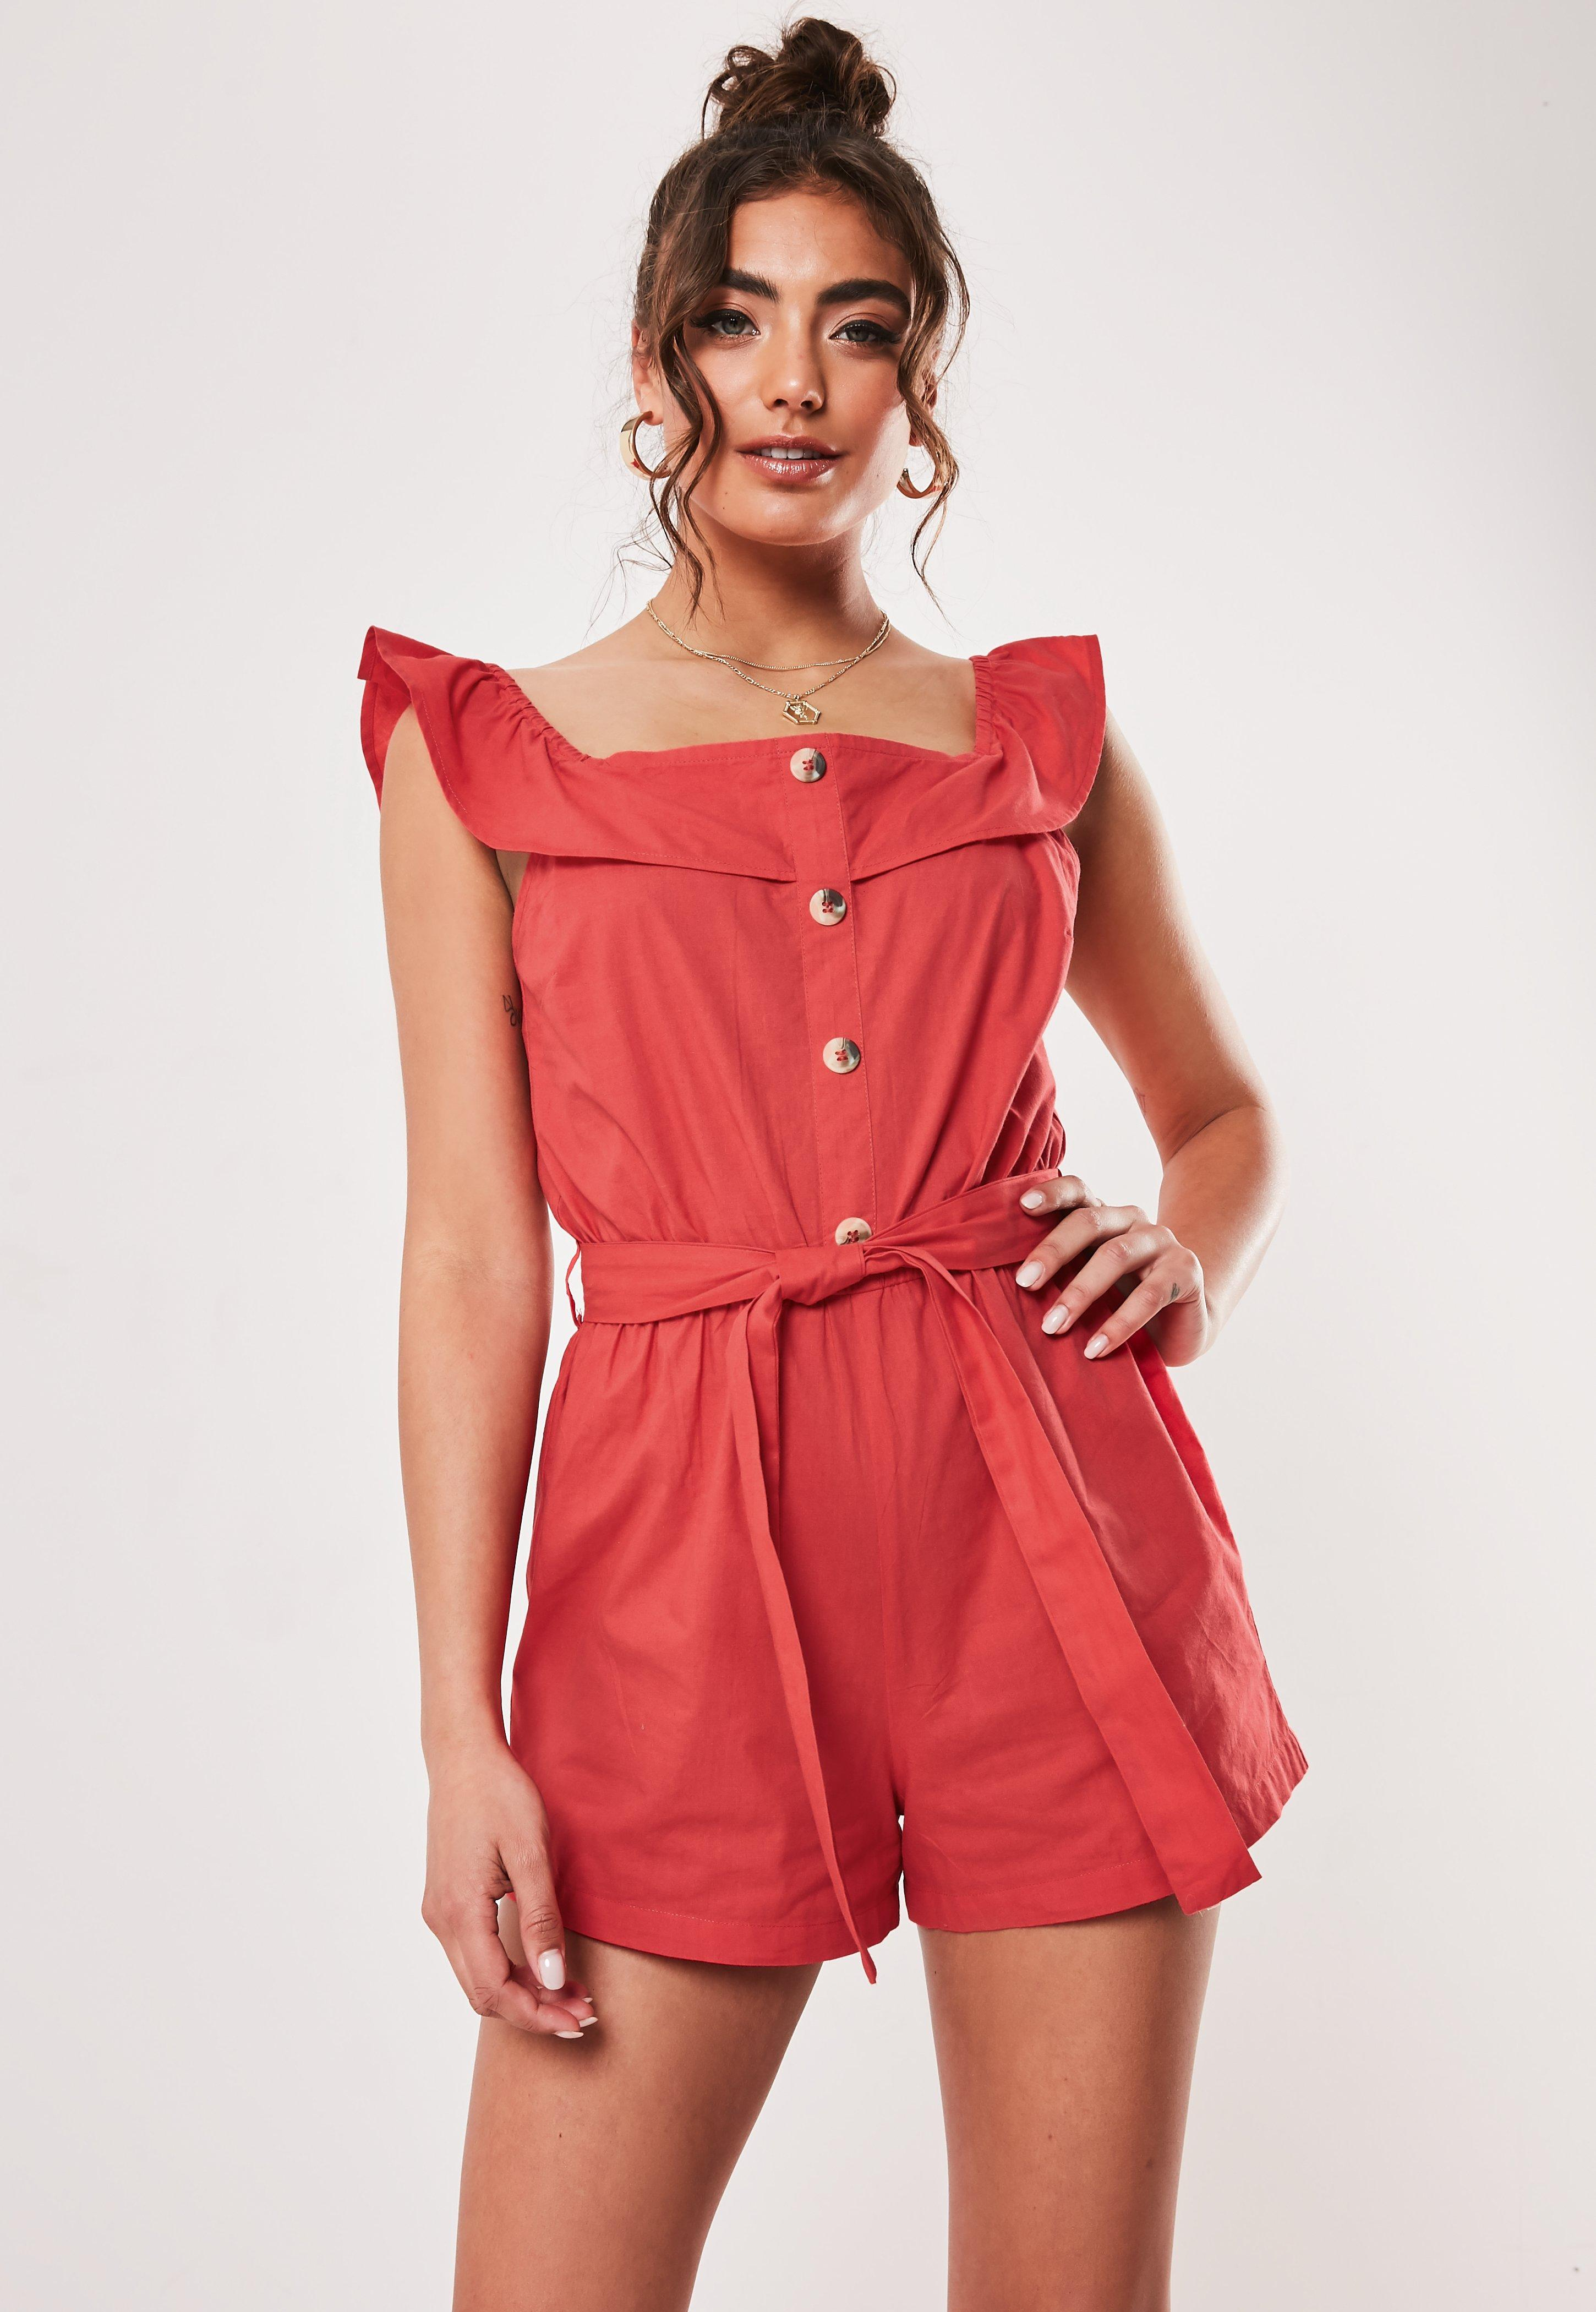 aad1fa86a717 Red Linen Look Frill Strappy Button Romper